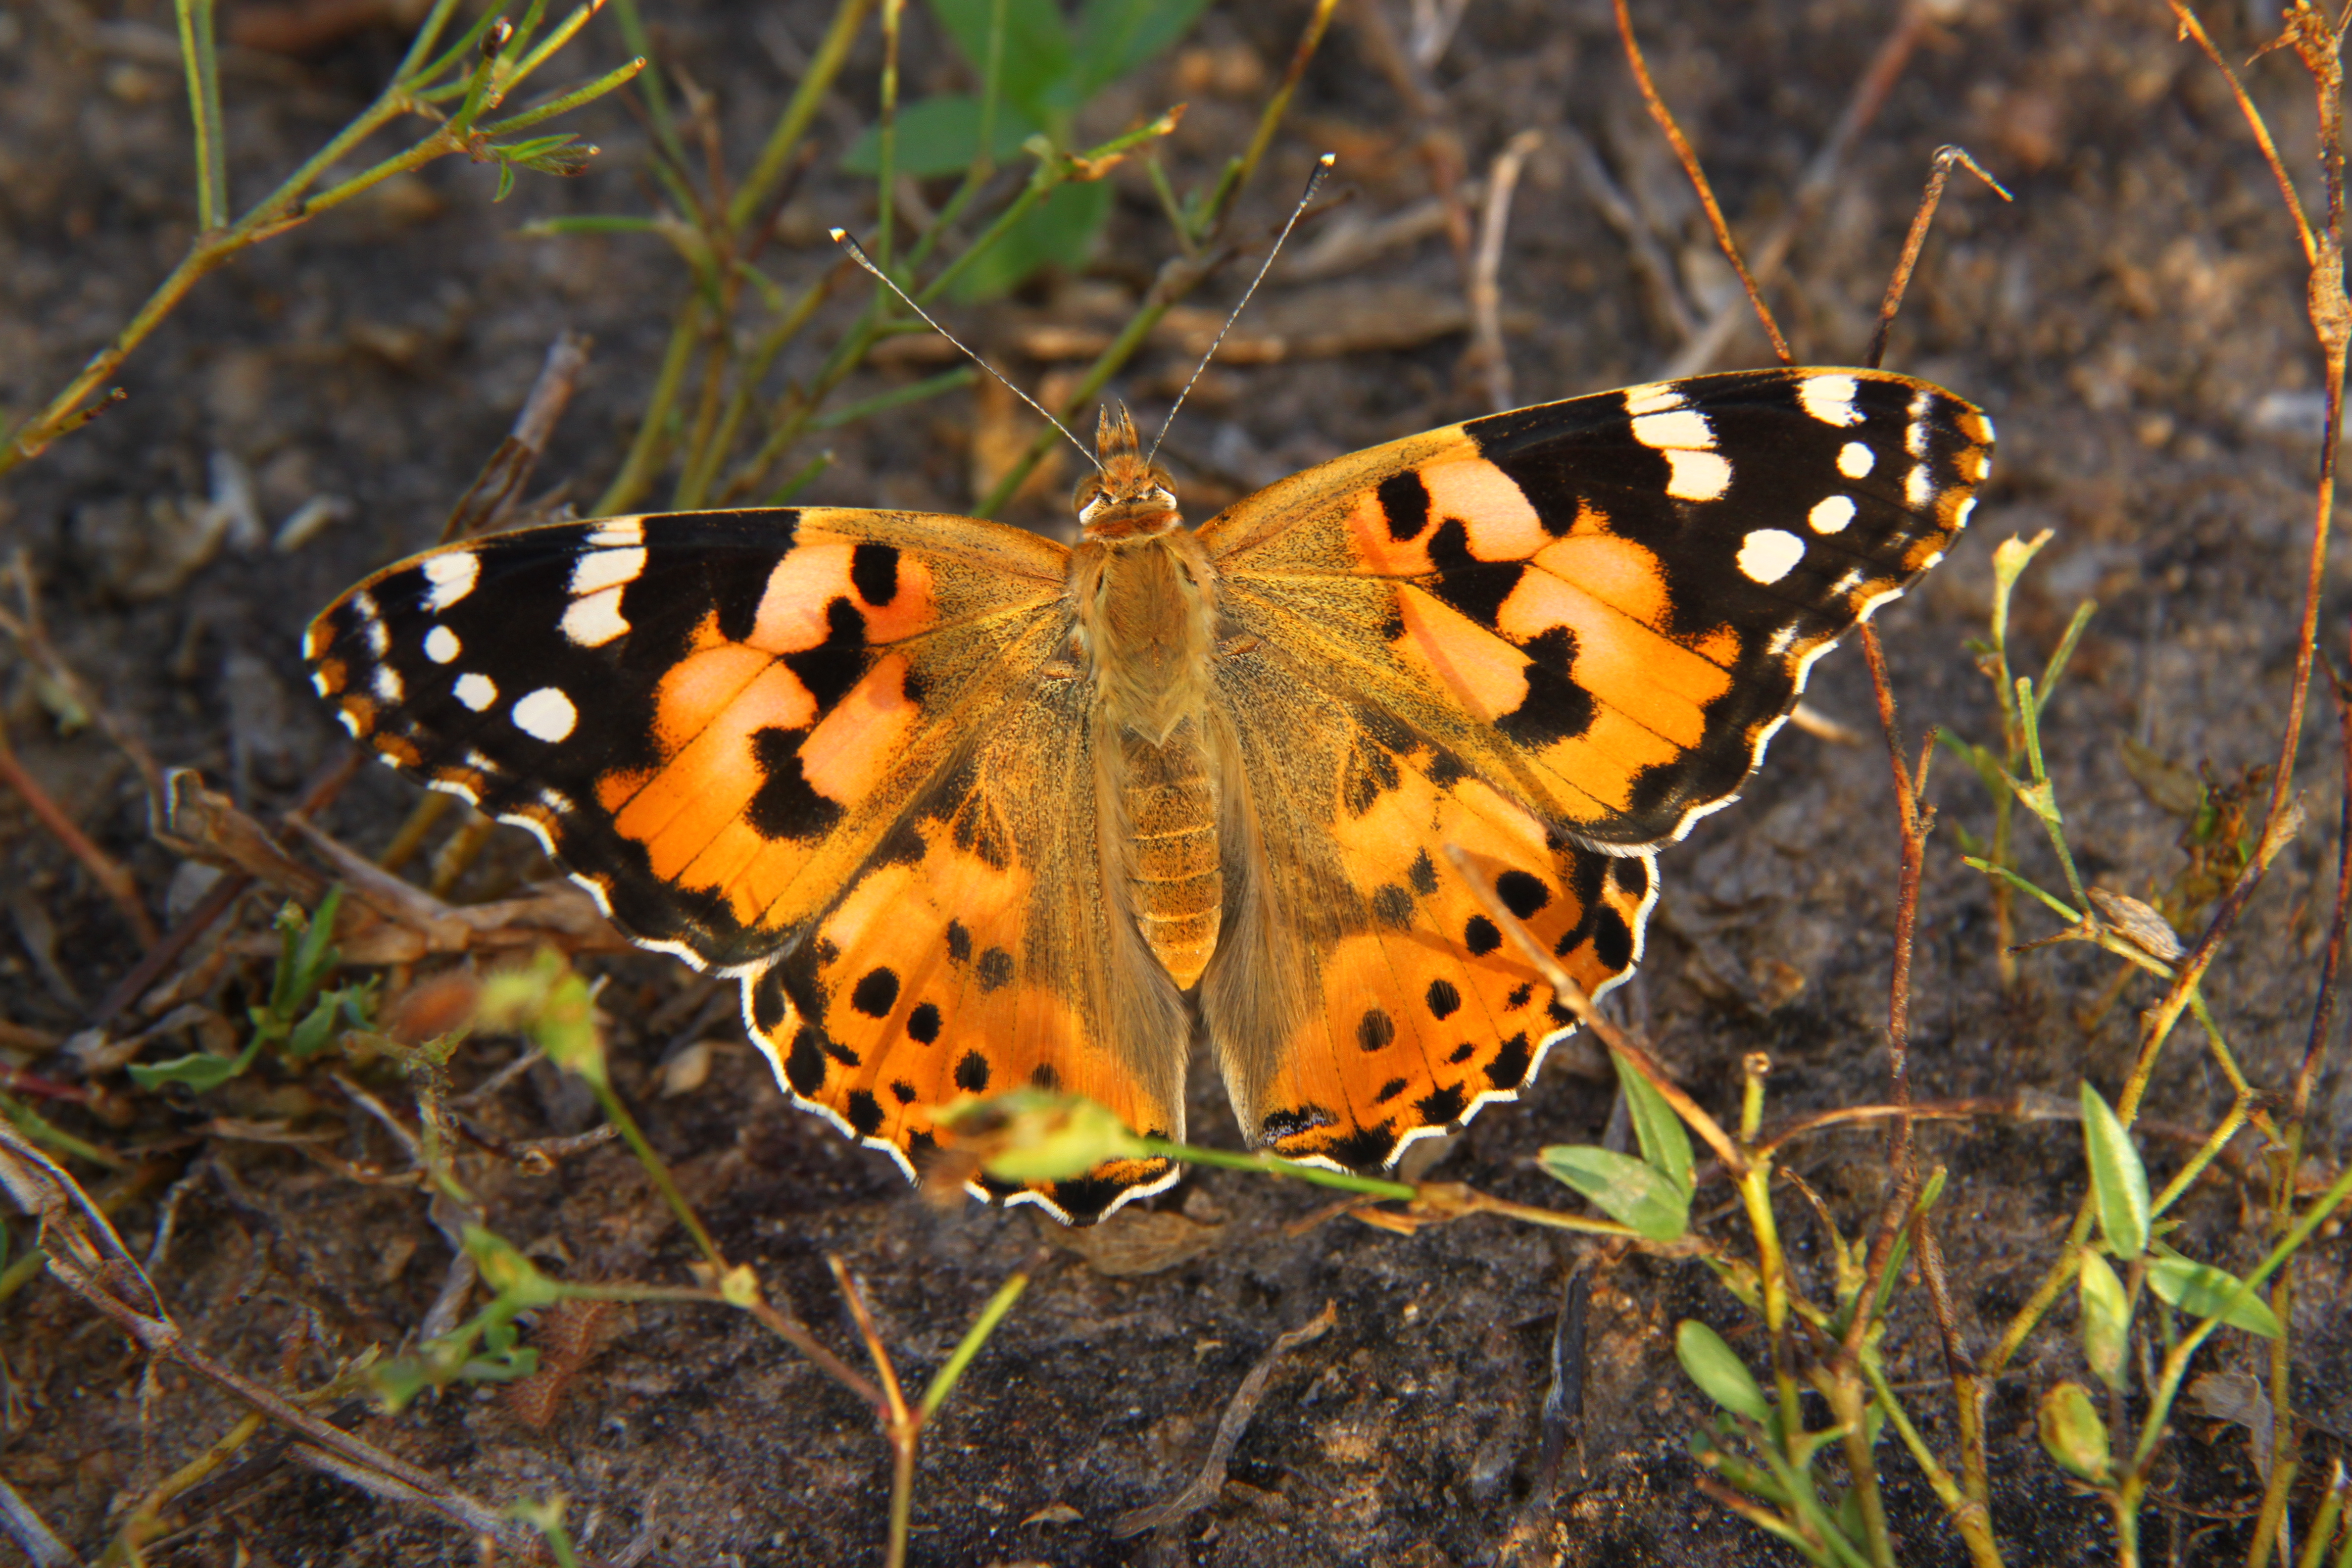 The Painted Lady in all her glory.